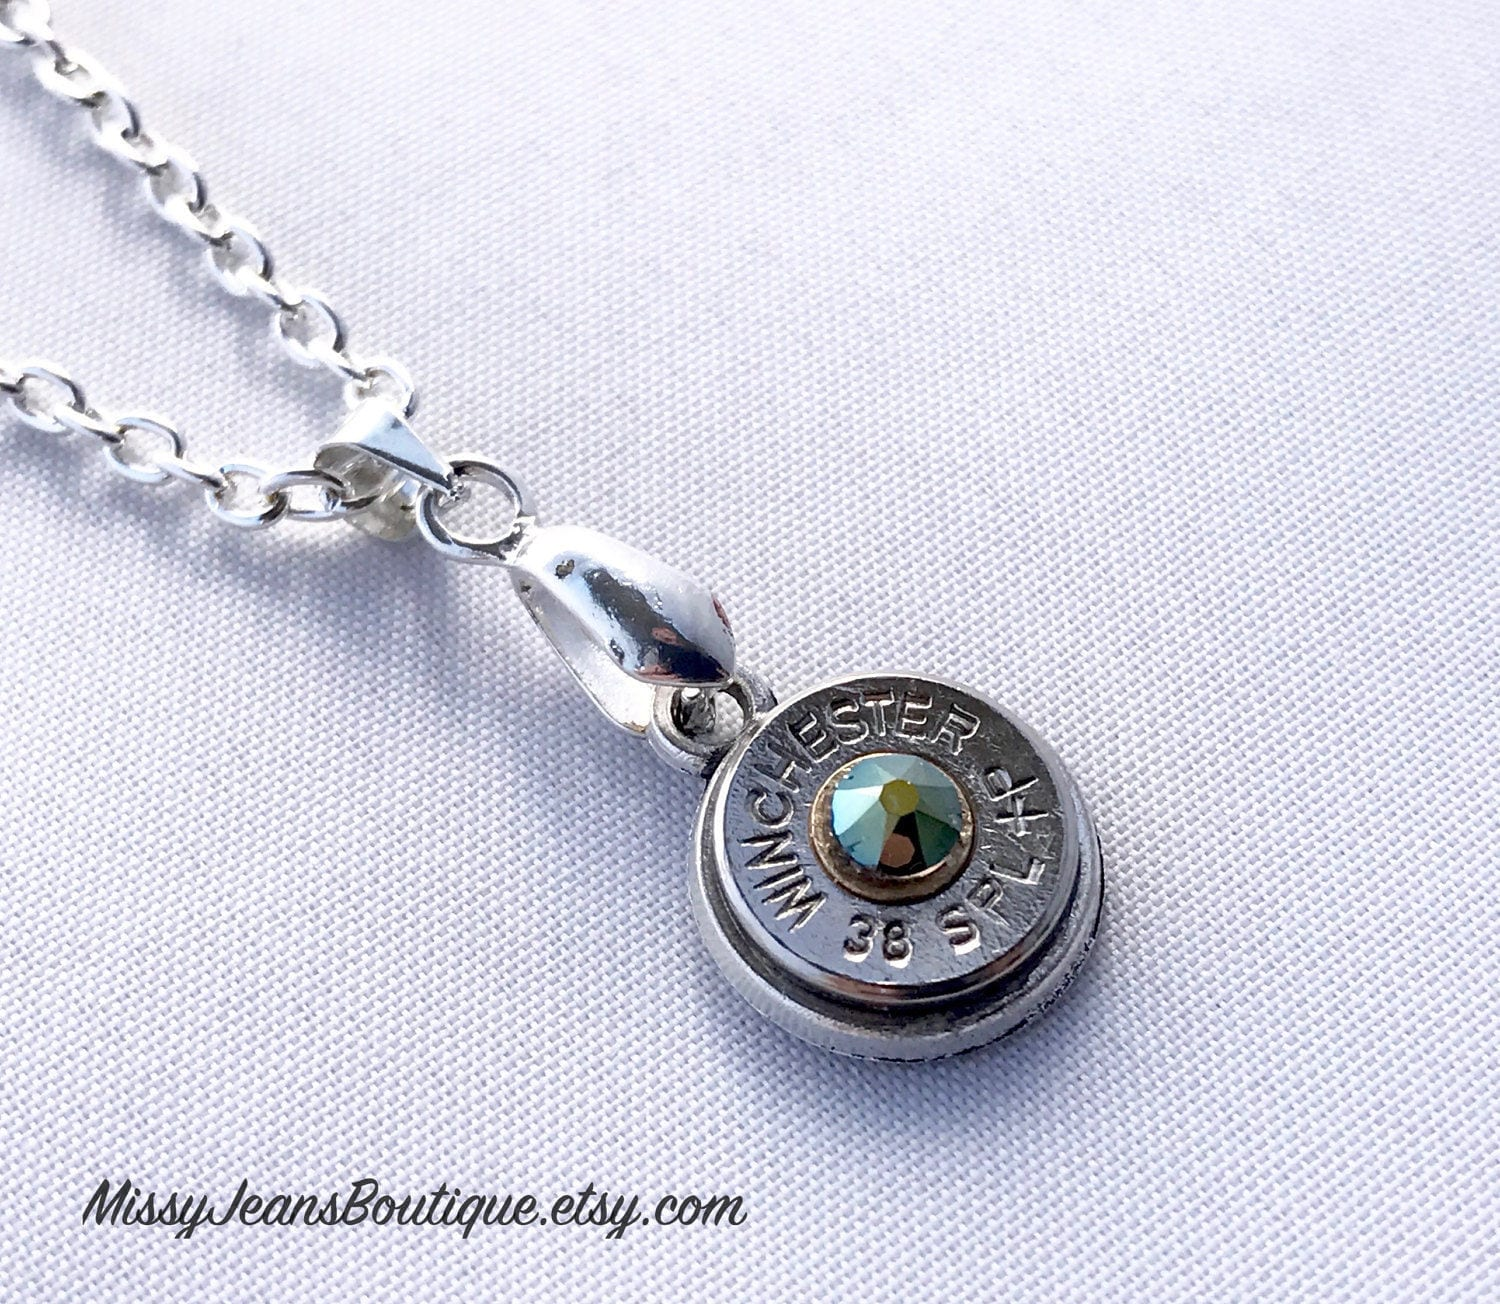 munch by good to of earth echo necklace alextuck fans friend special pendant p alien picture s